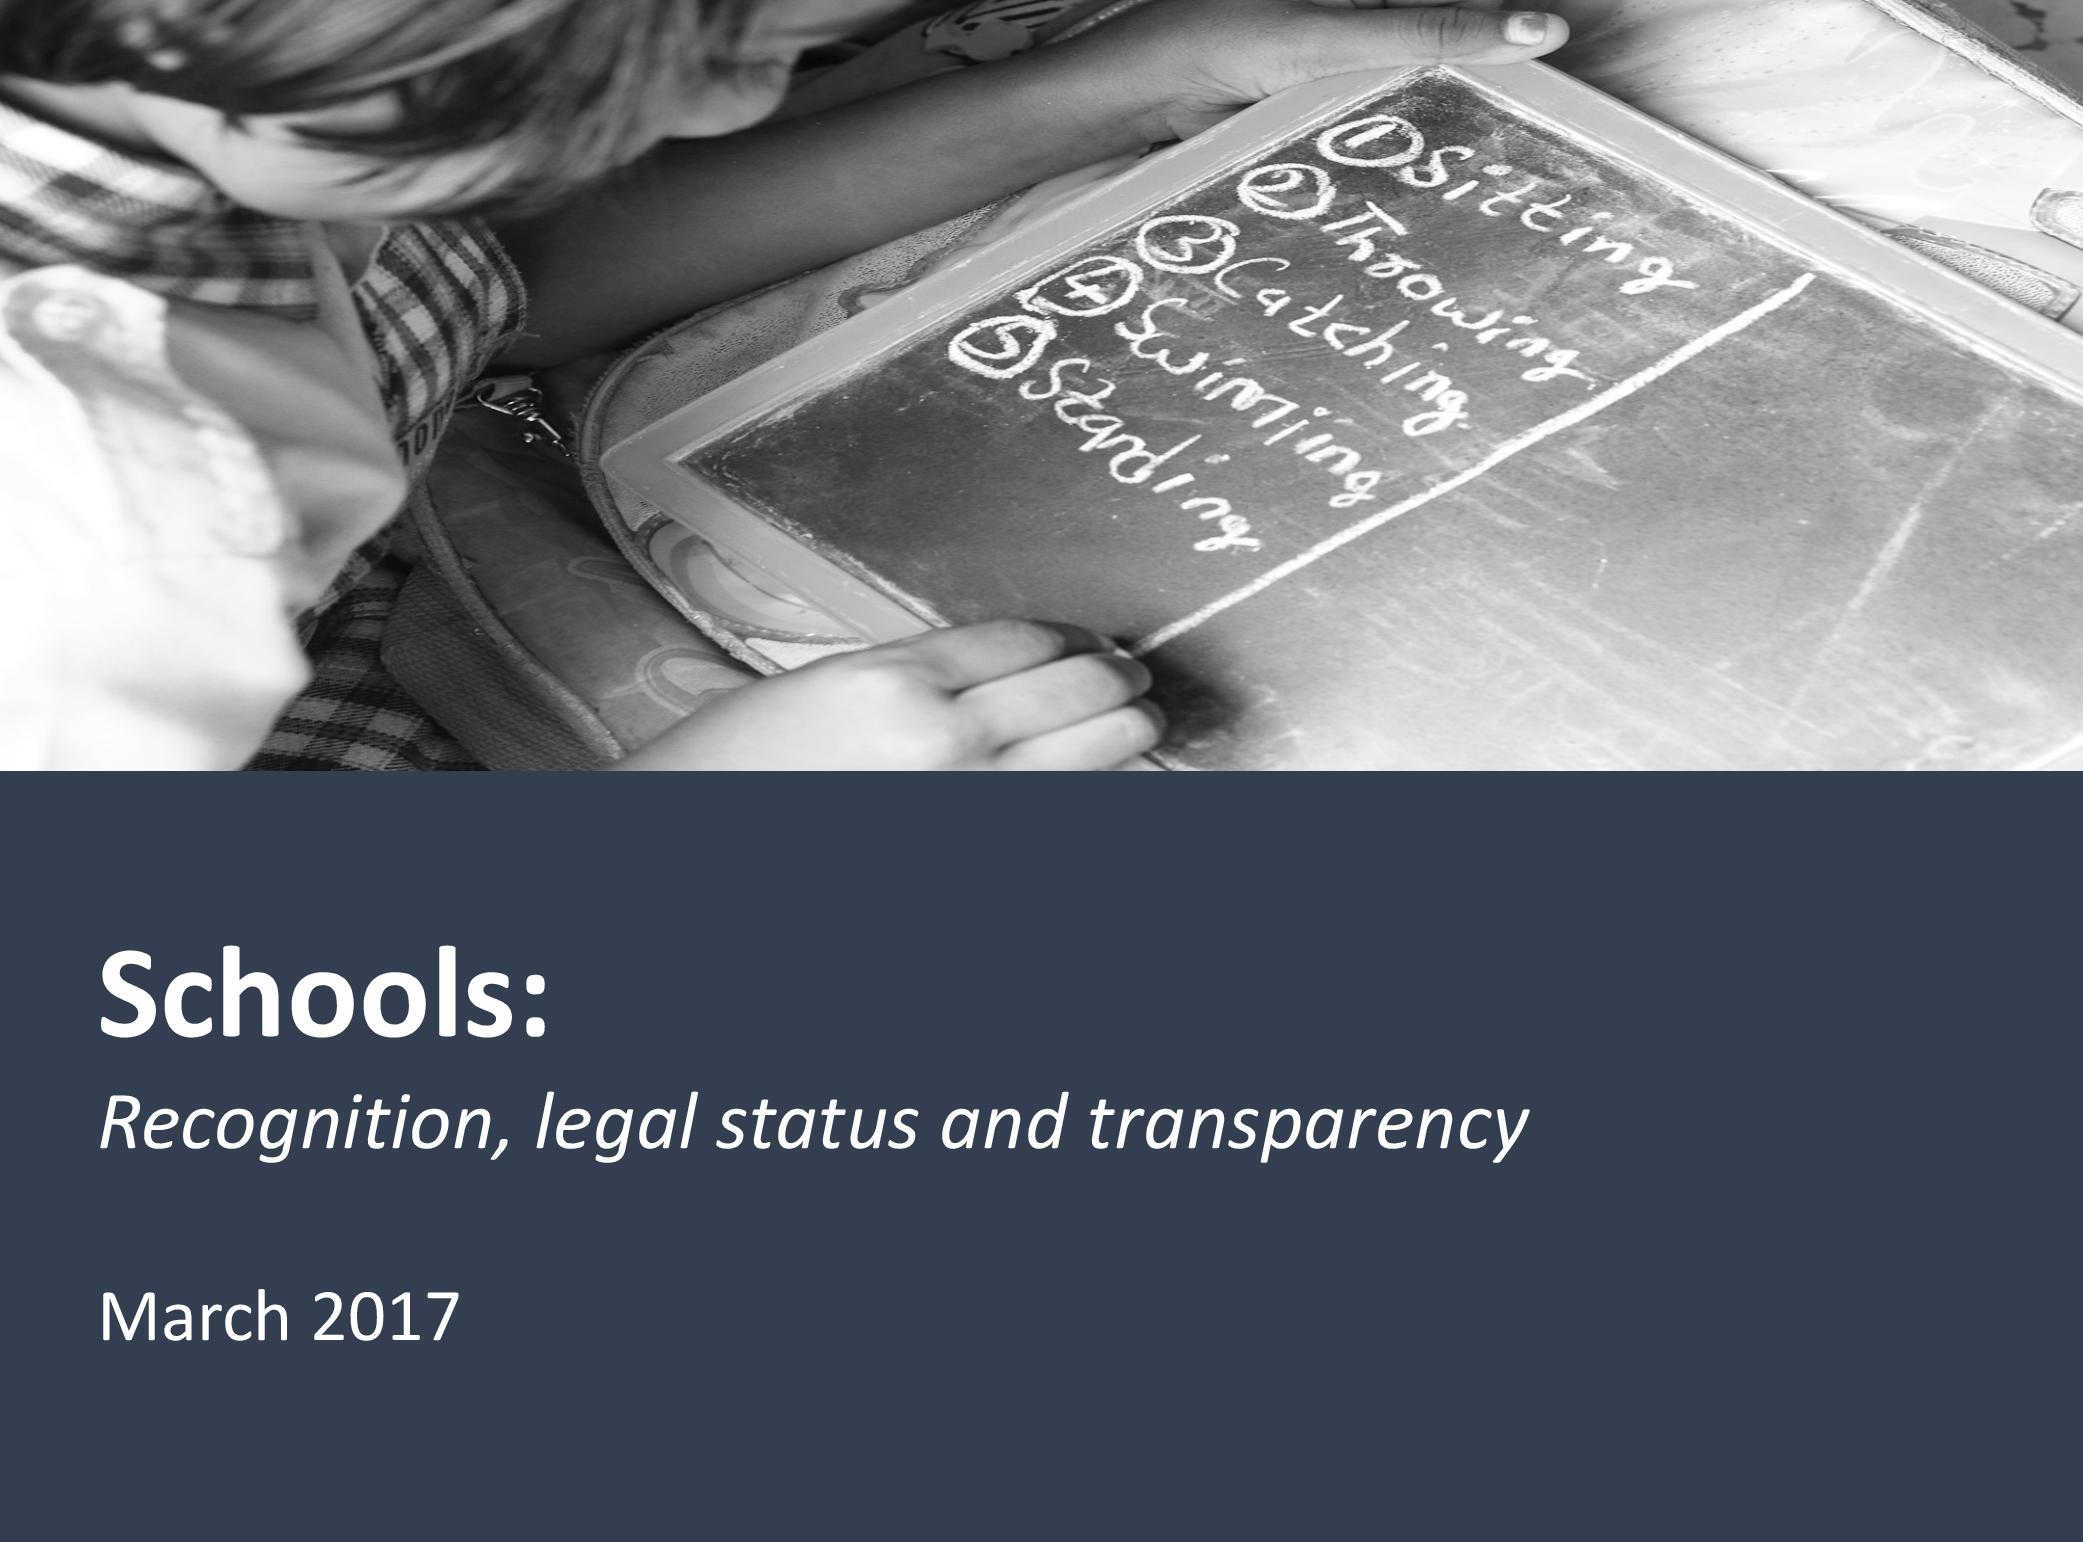 Schools: Recognition, legal status and transparency